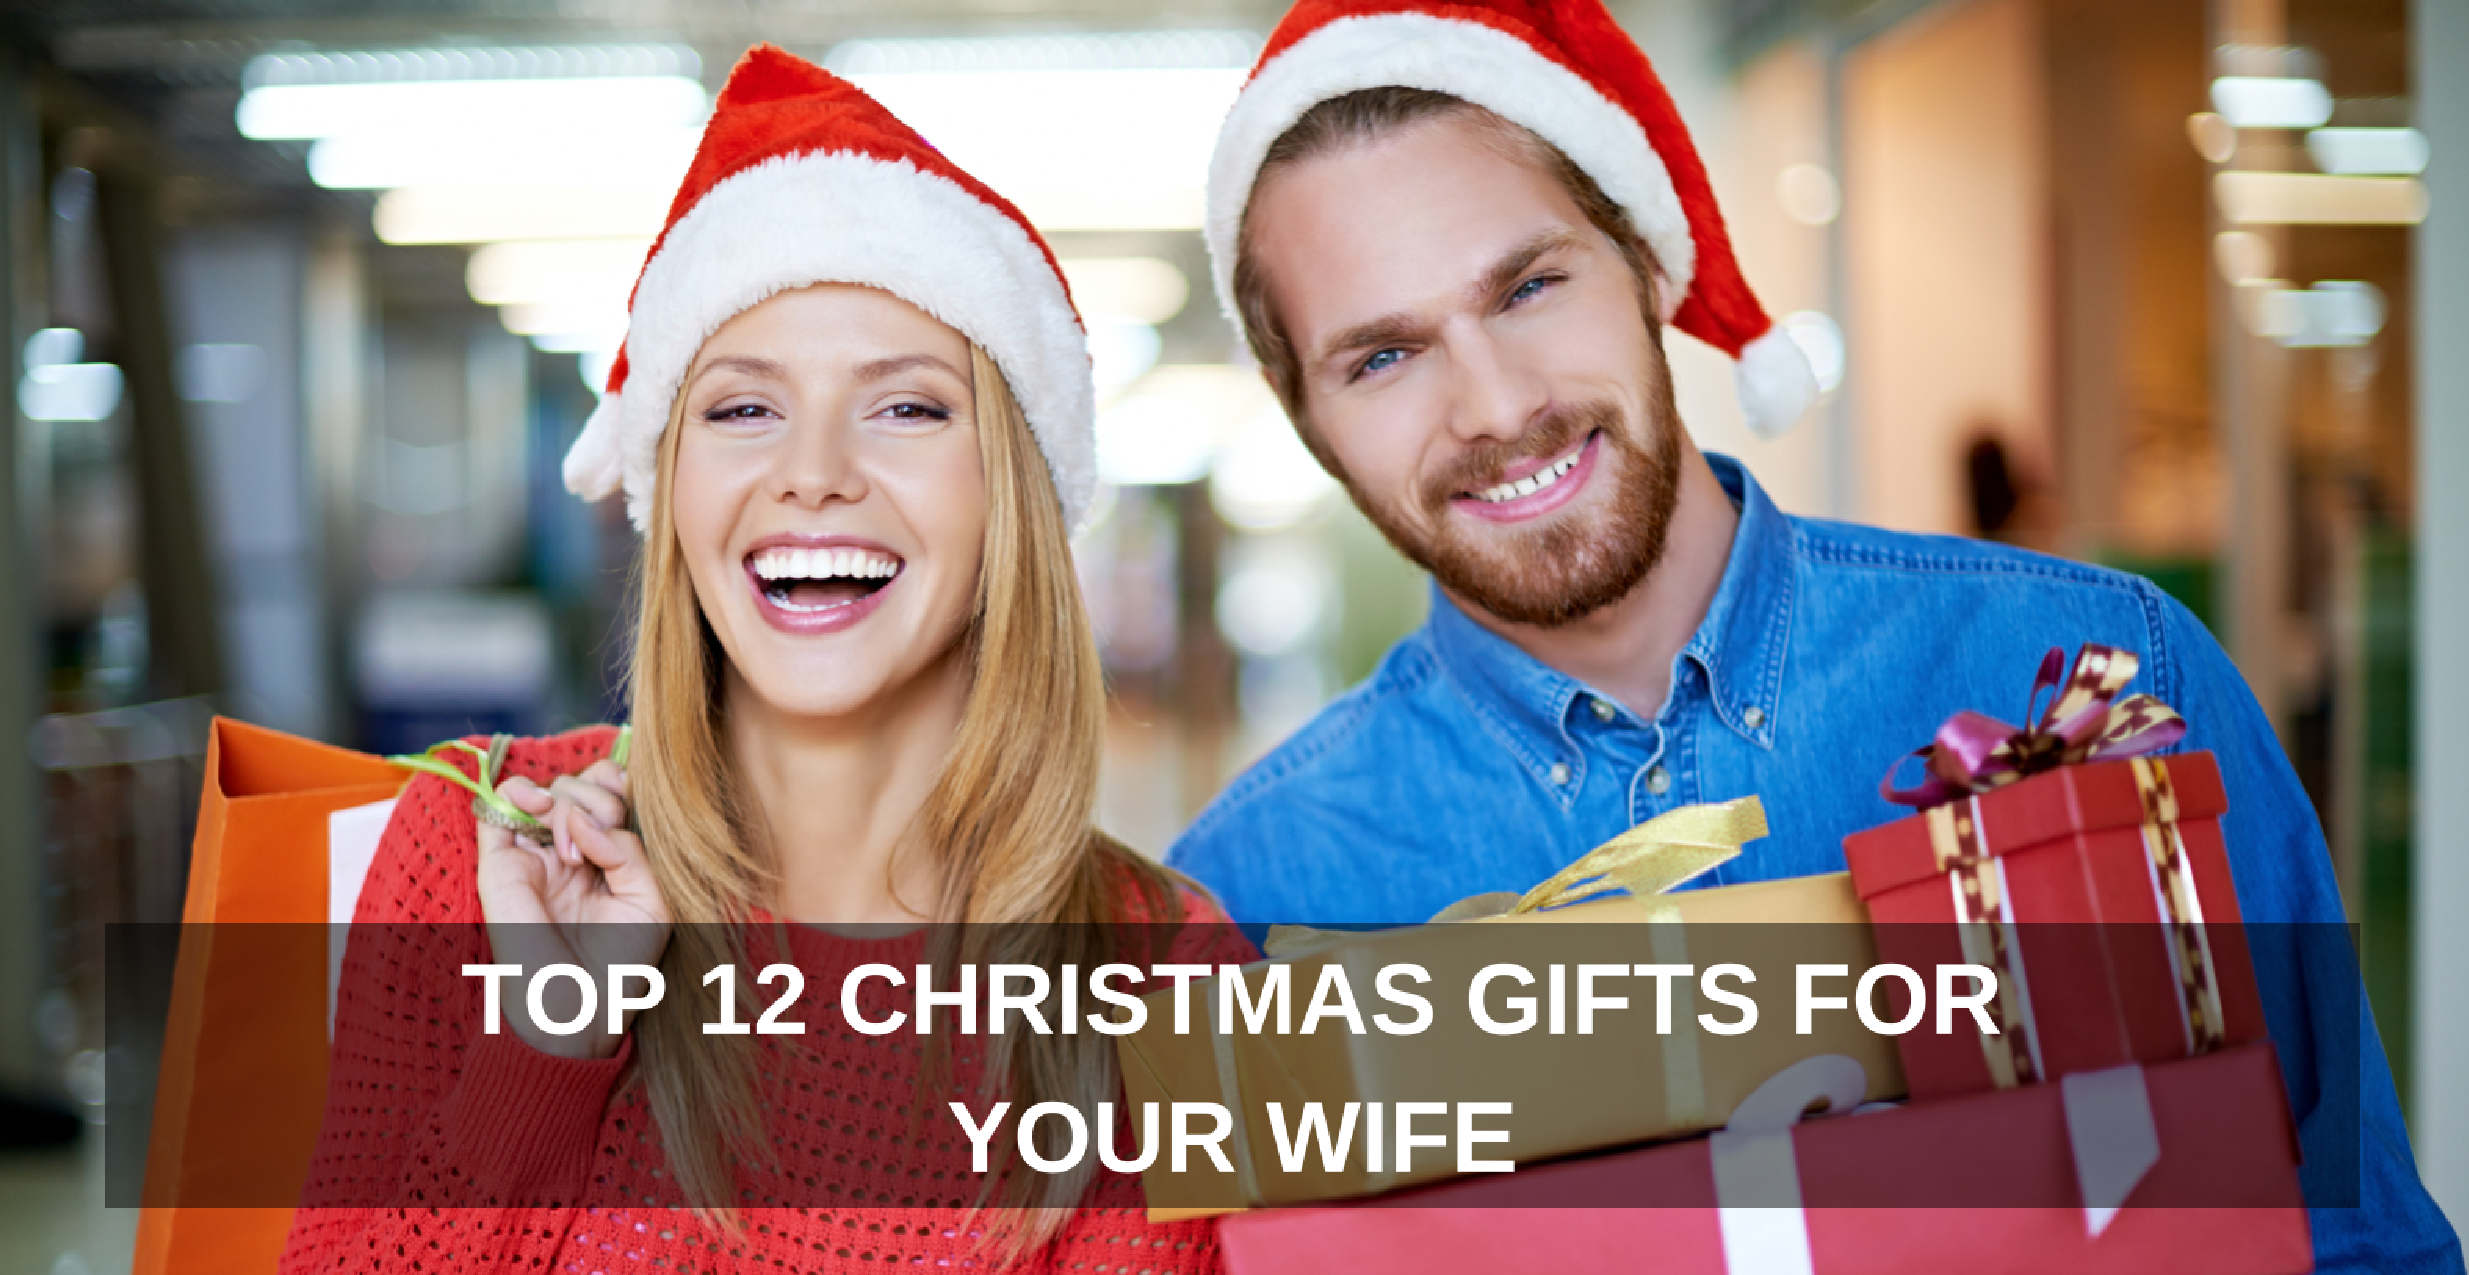 TOP 12 CHRISTMAS GIFTS FOR YOUR WIFE - ONE Extraordinary Marriage